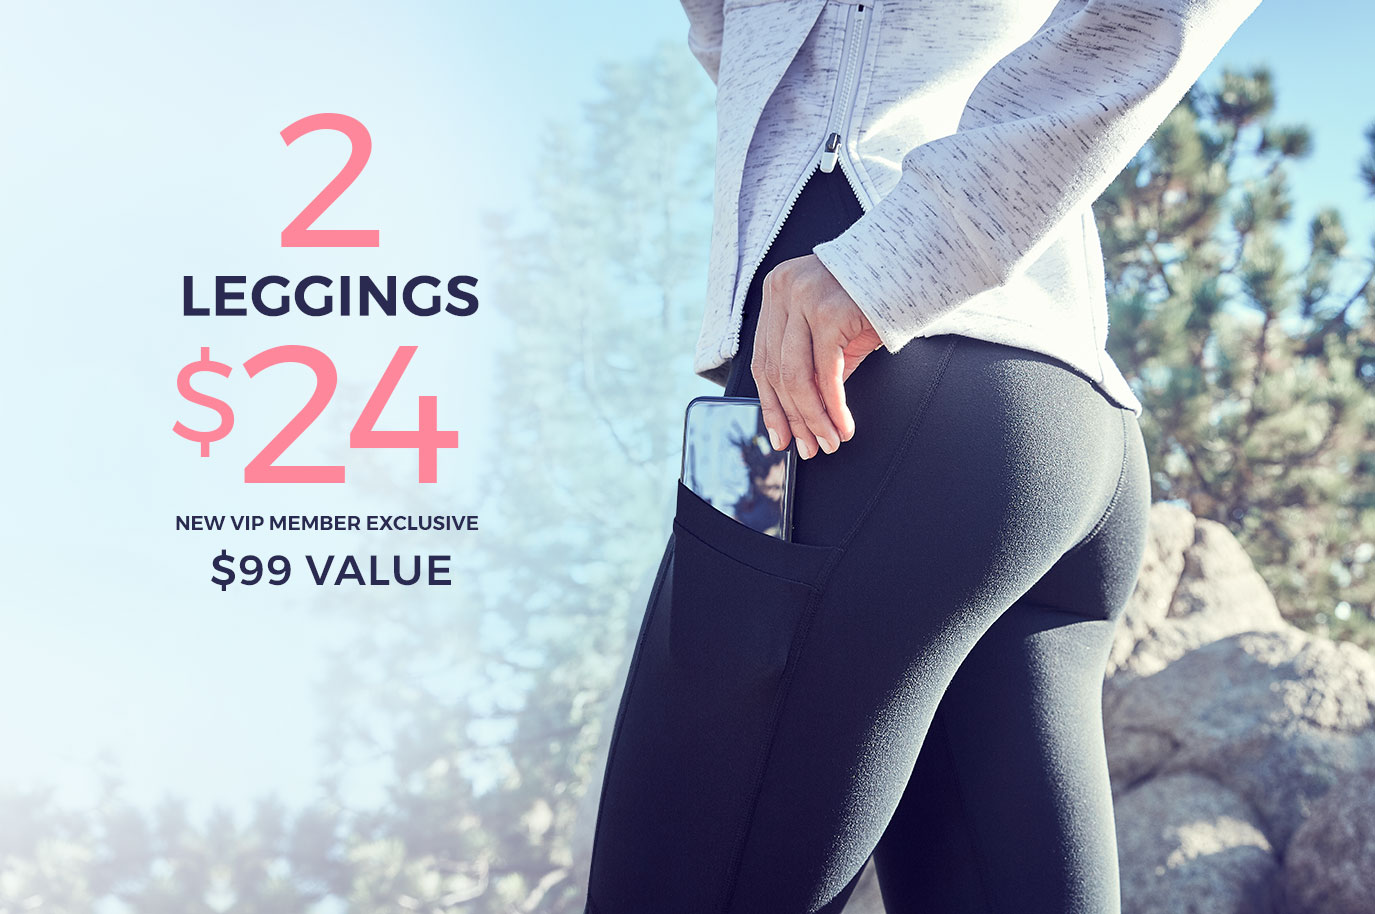 2 Leggings for $24